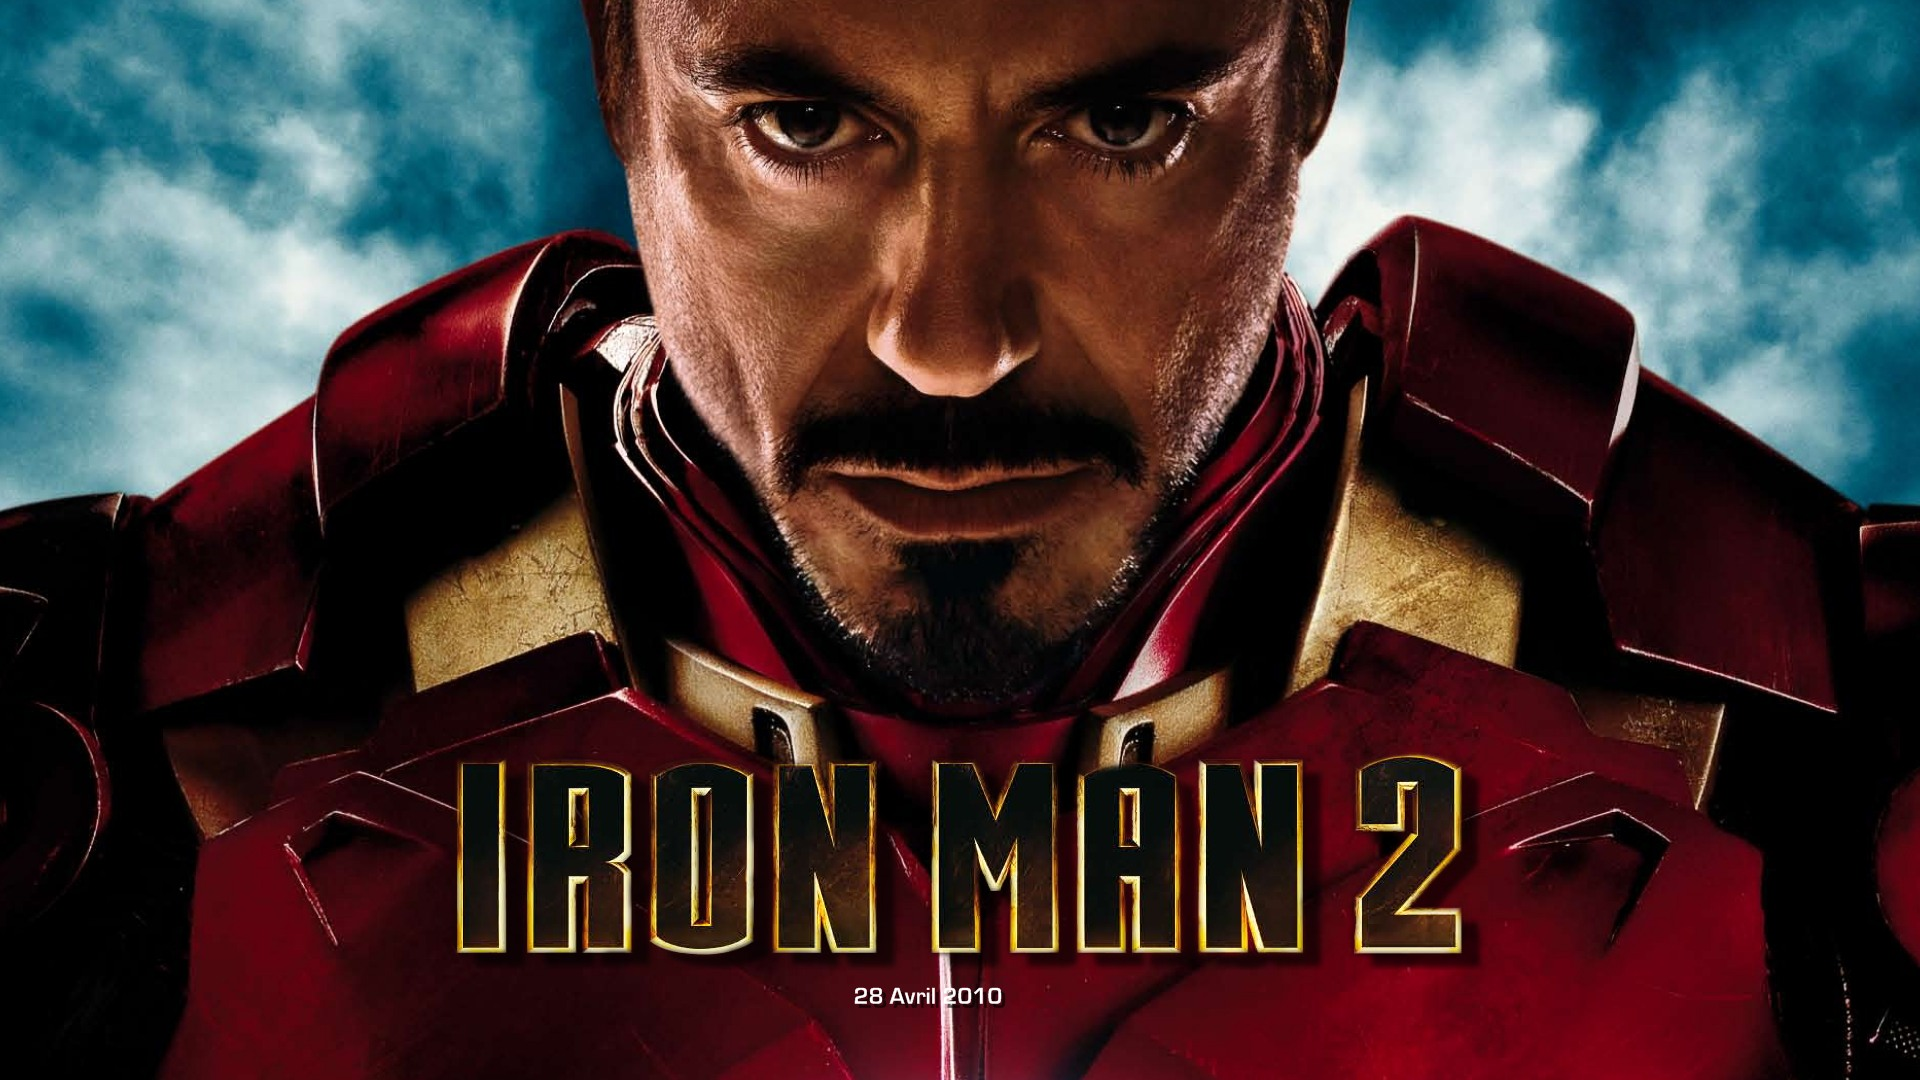 [Review]Iron Man 2 (2010)